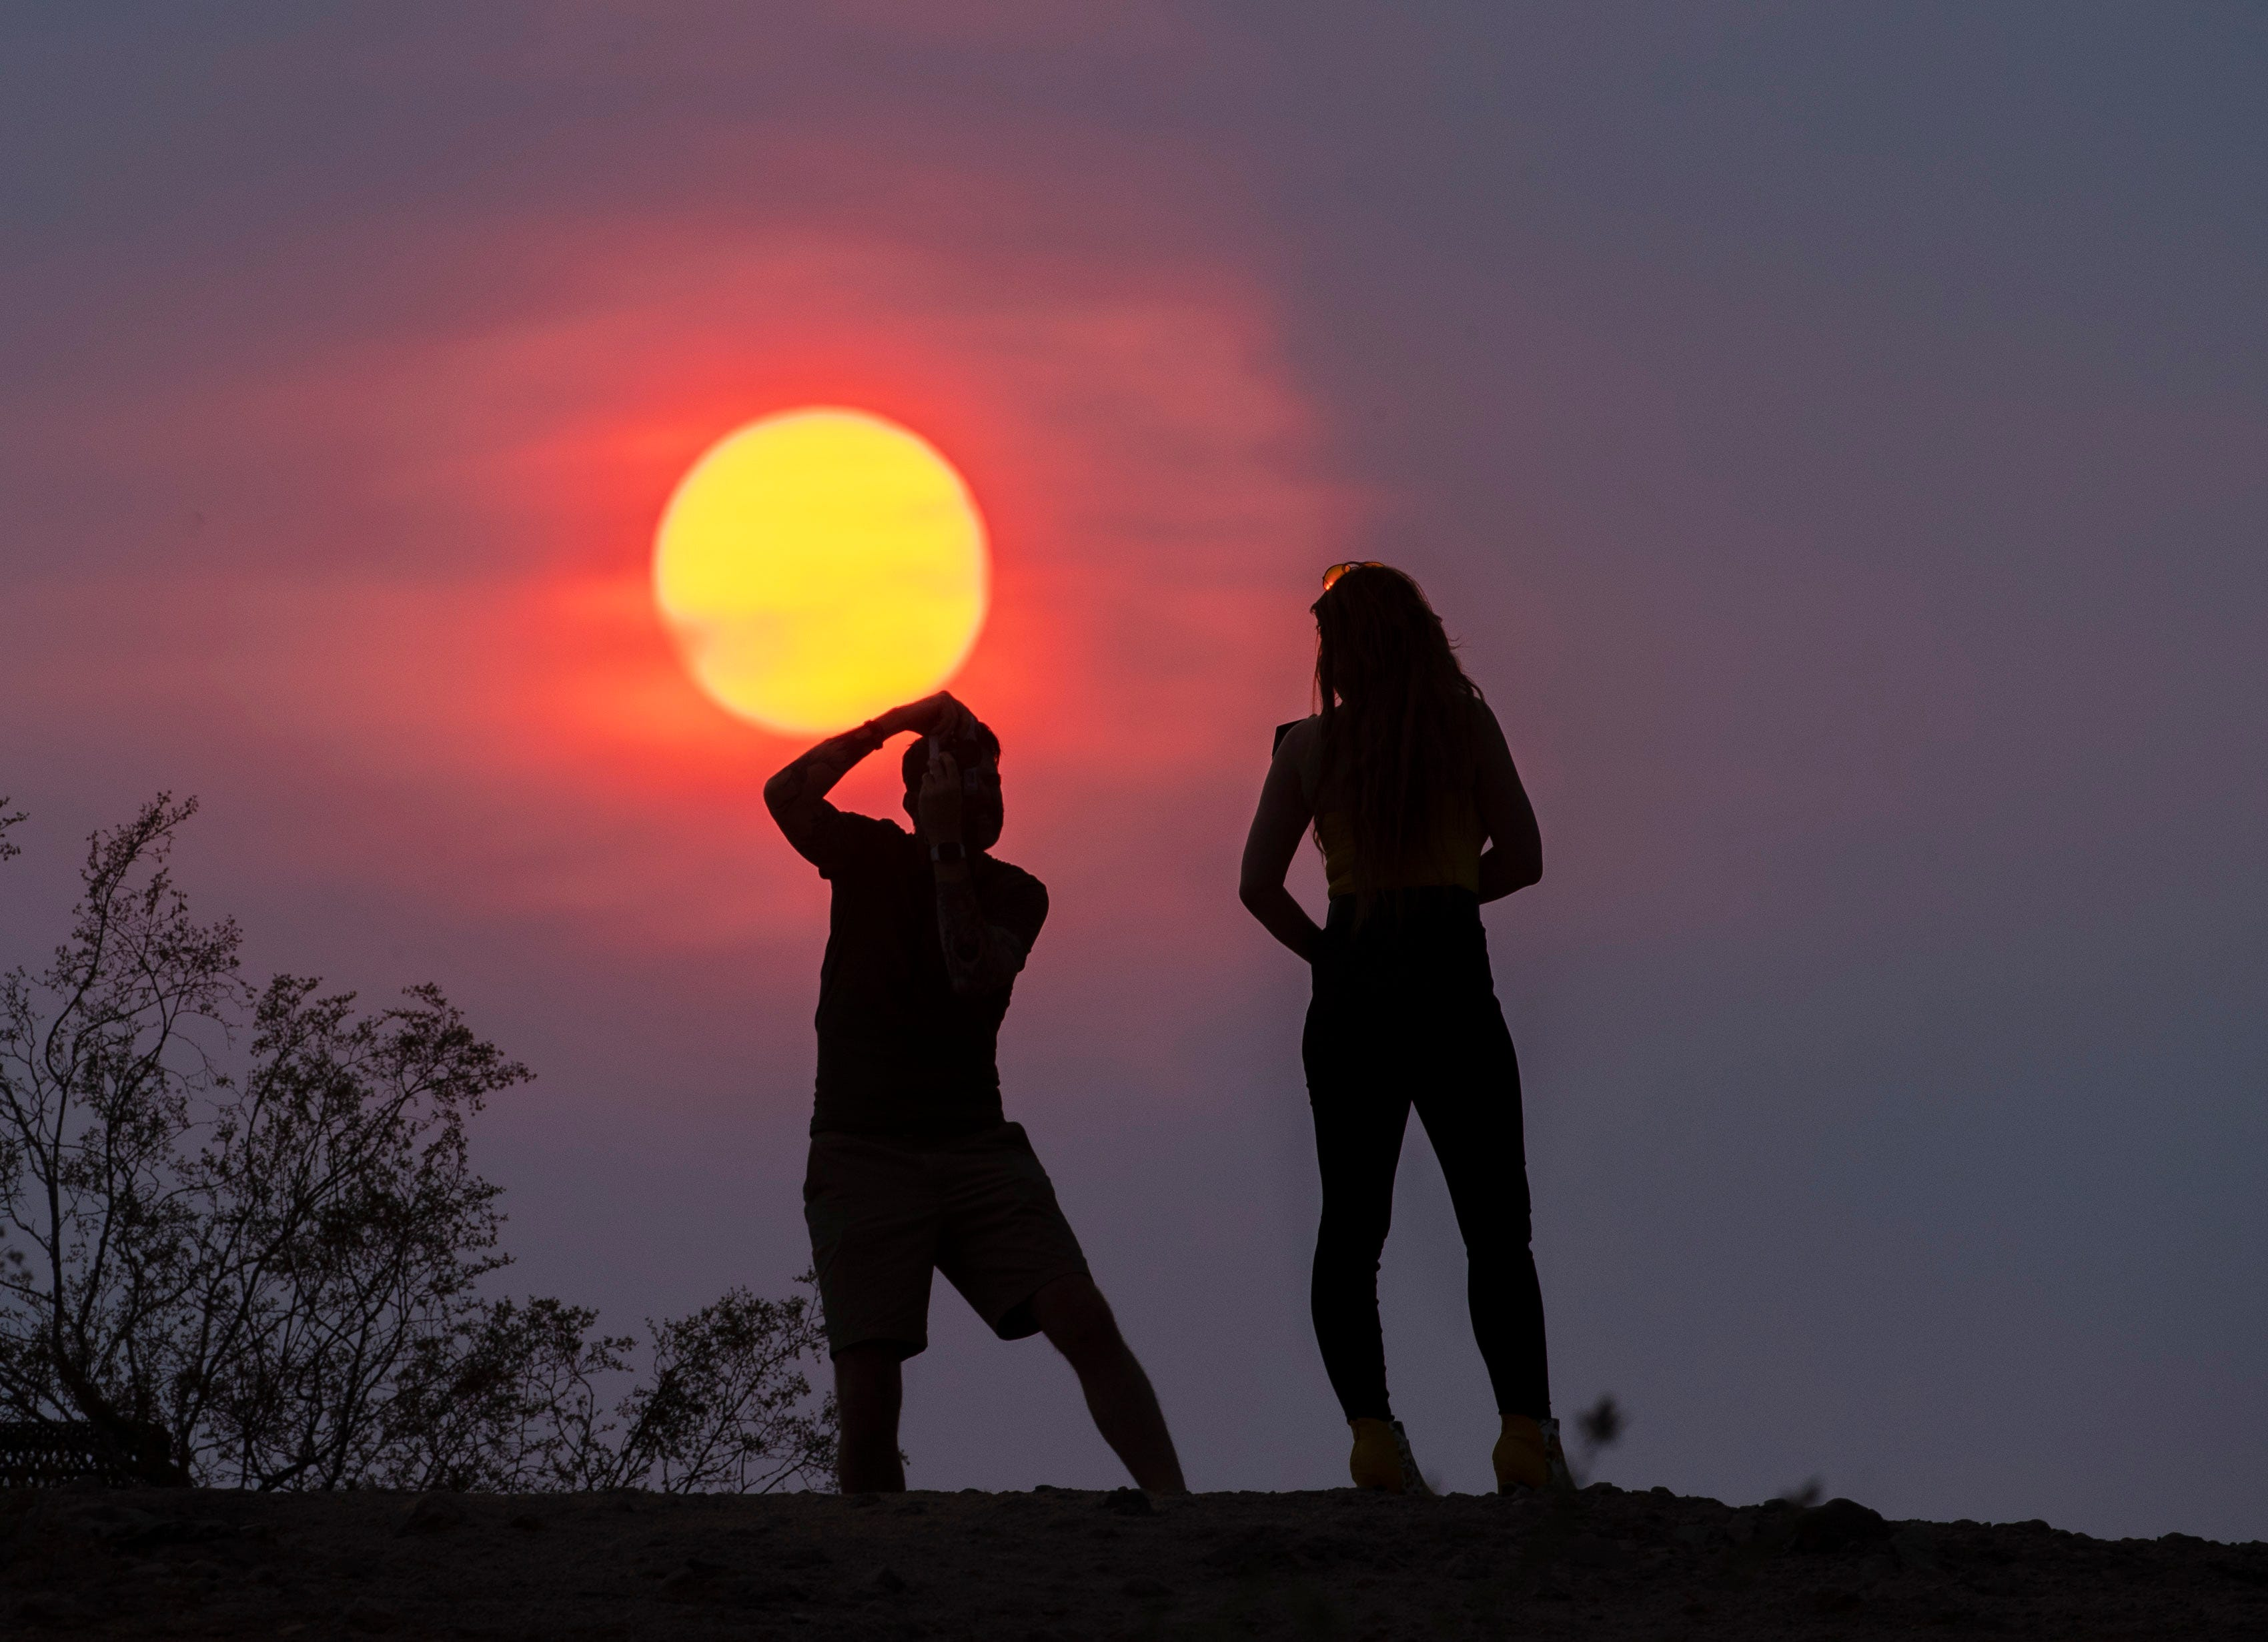 A recent heat wave blistered the Southwest. What does that mean for the summer?